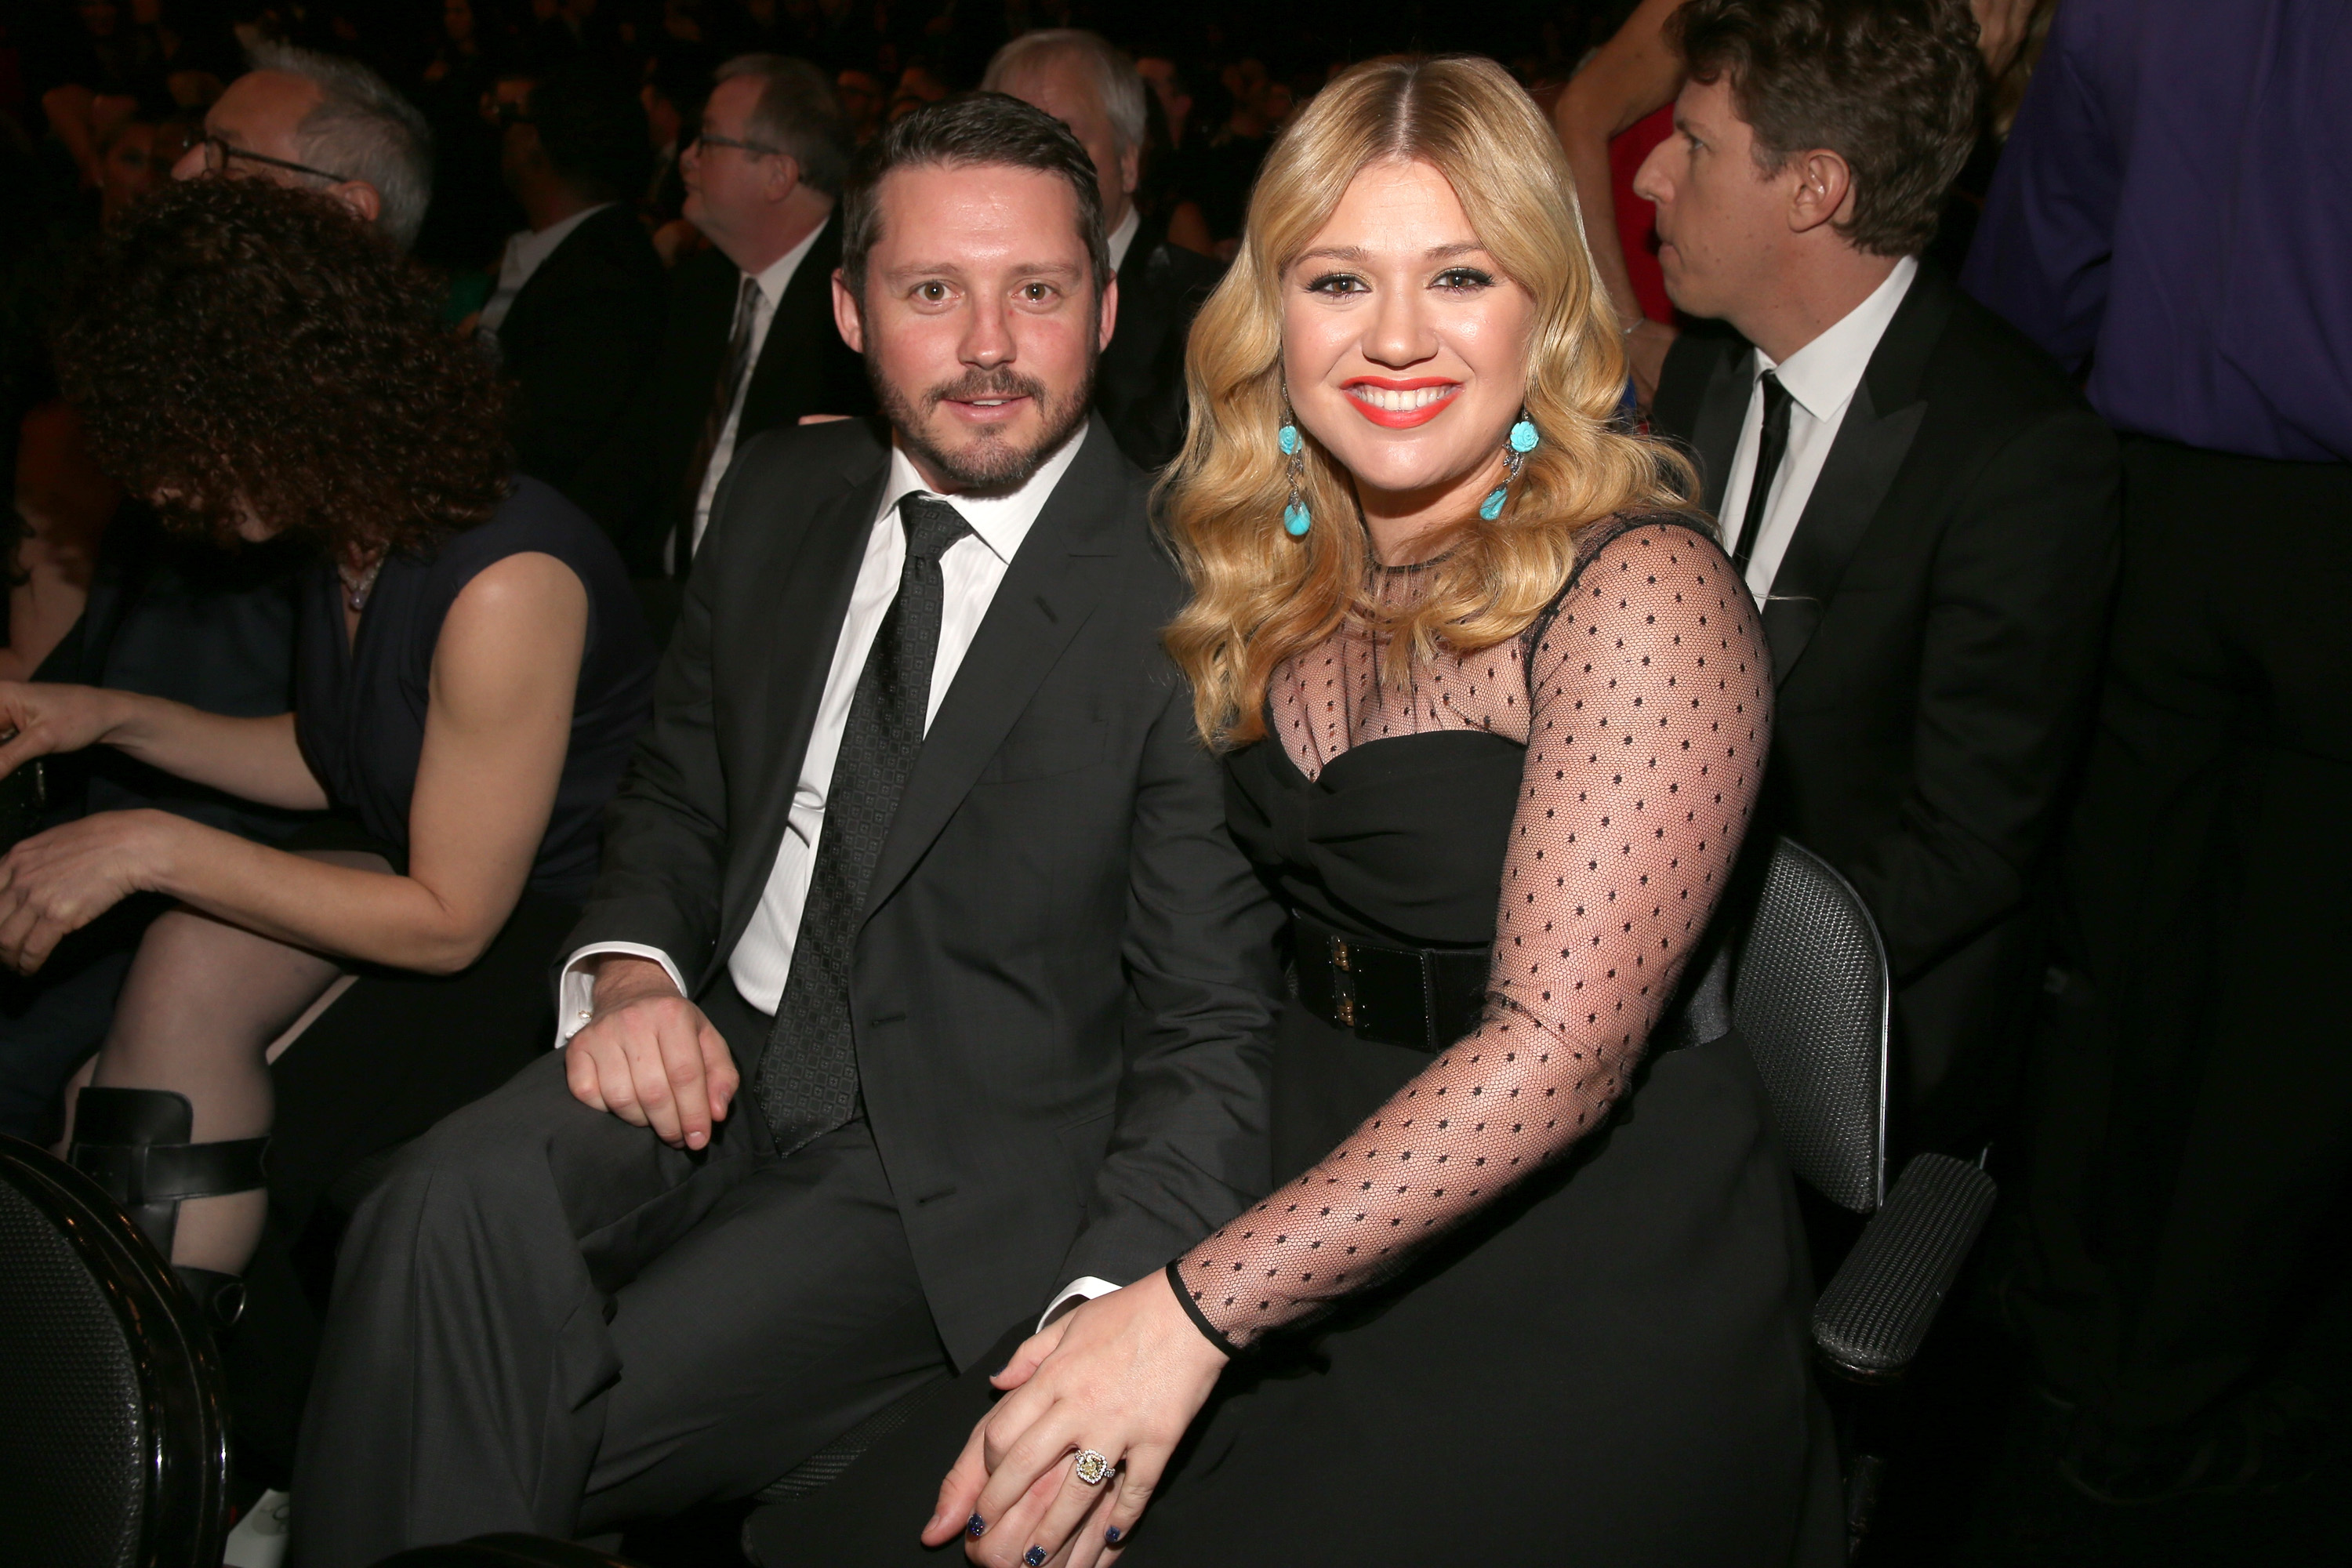 Kelly Clarkson says life's 'been a little bit of a dumpster' since filing for divorce